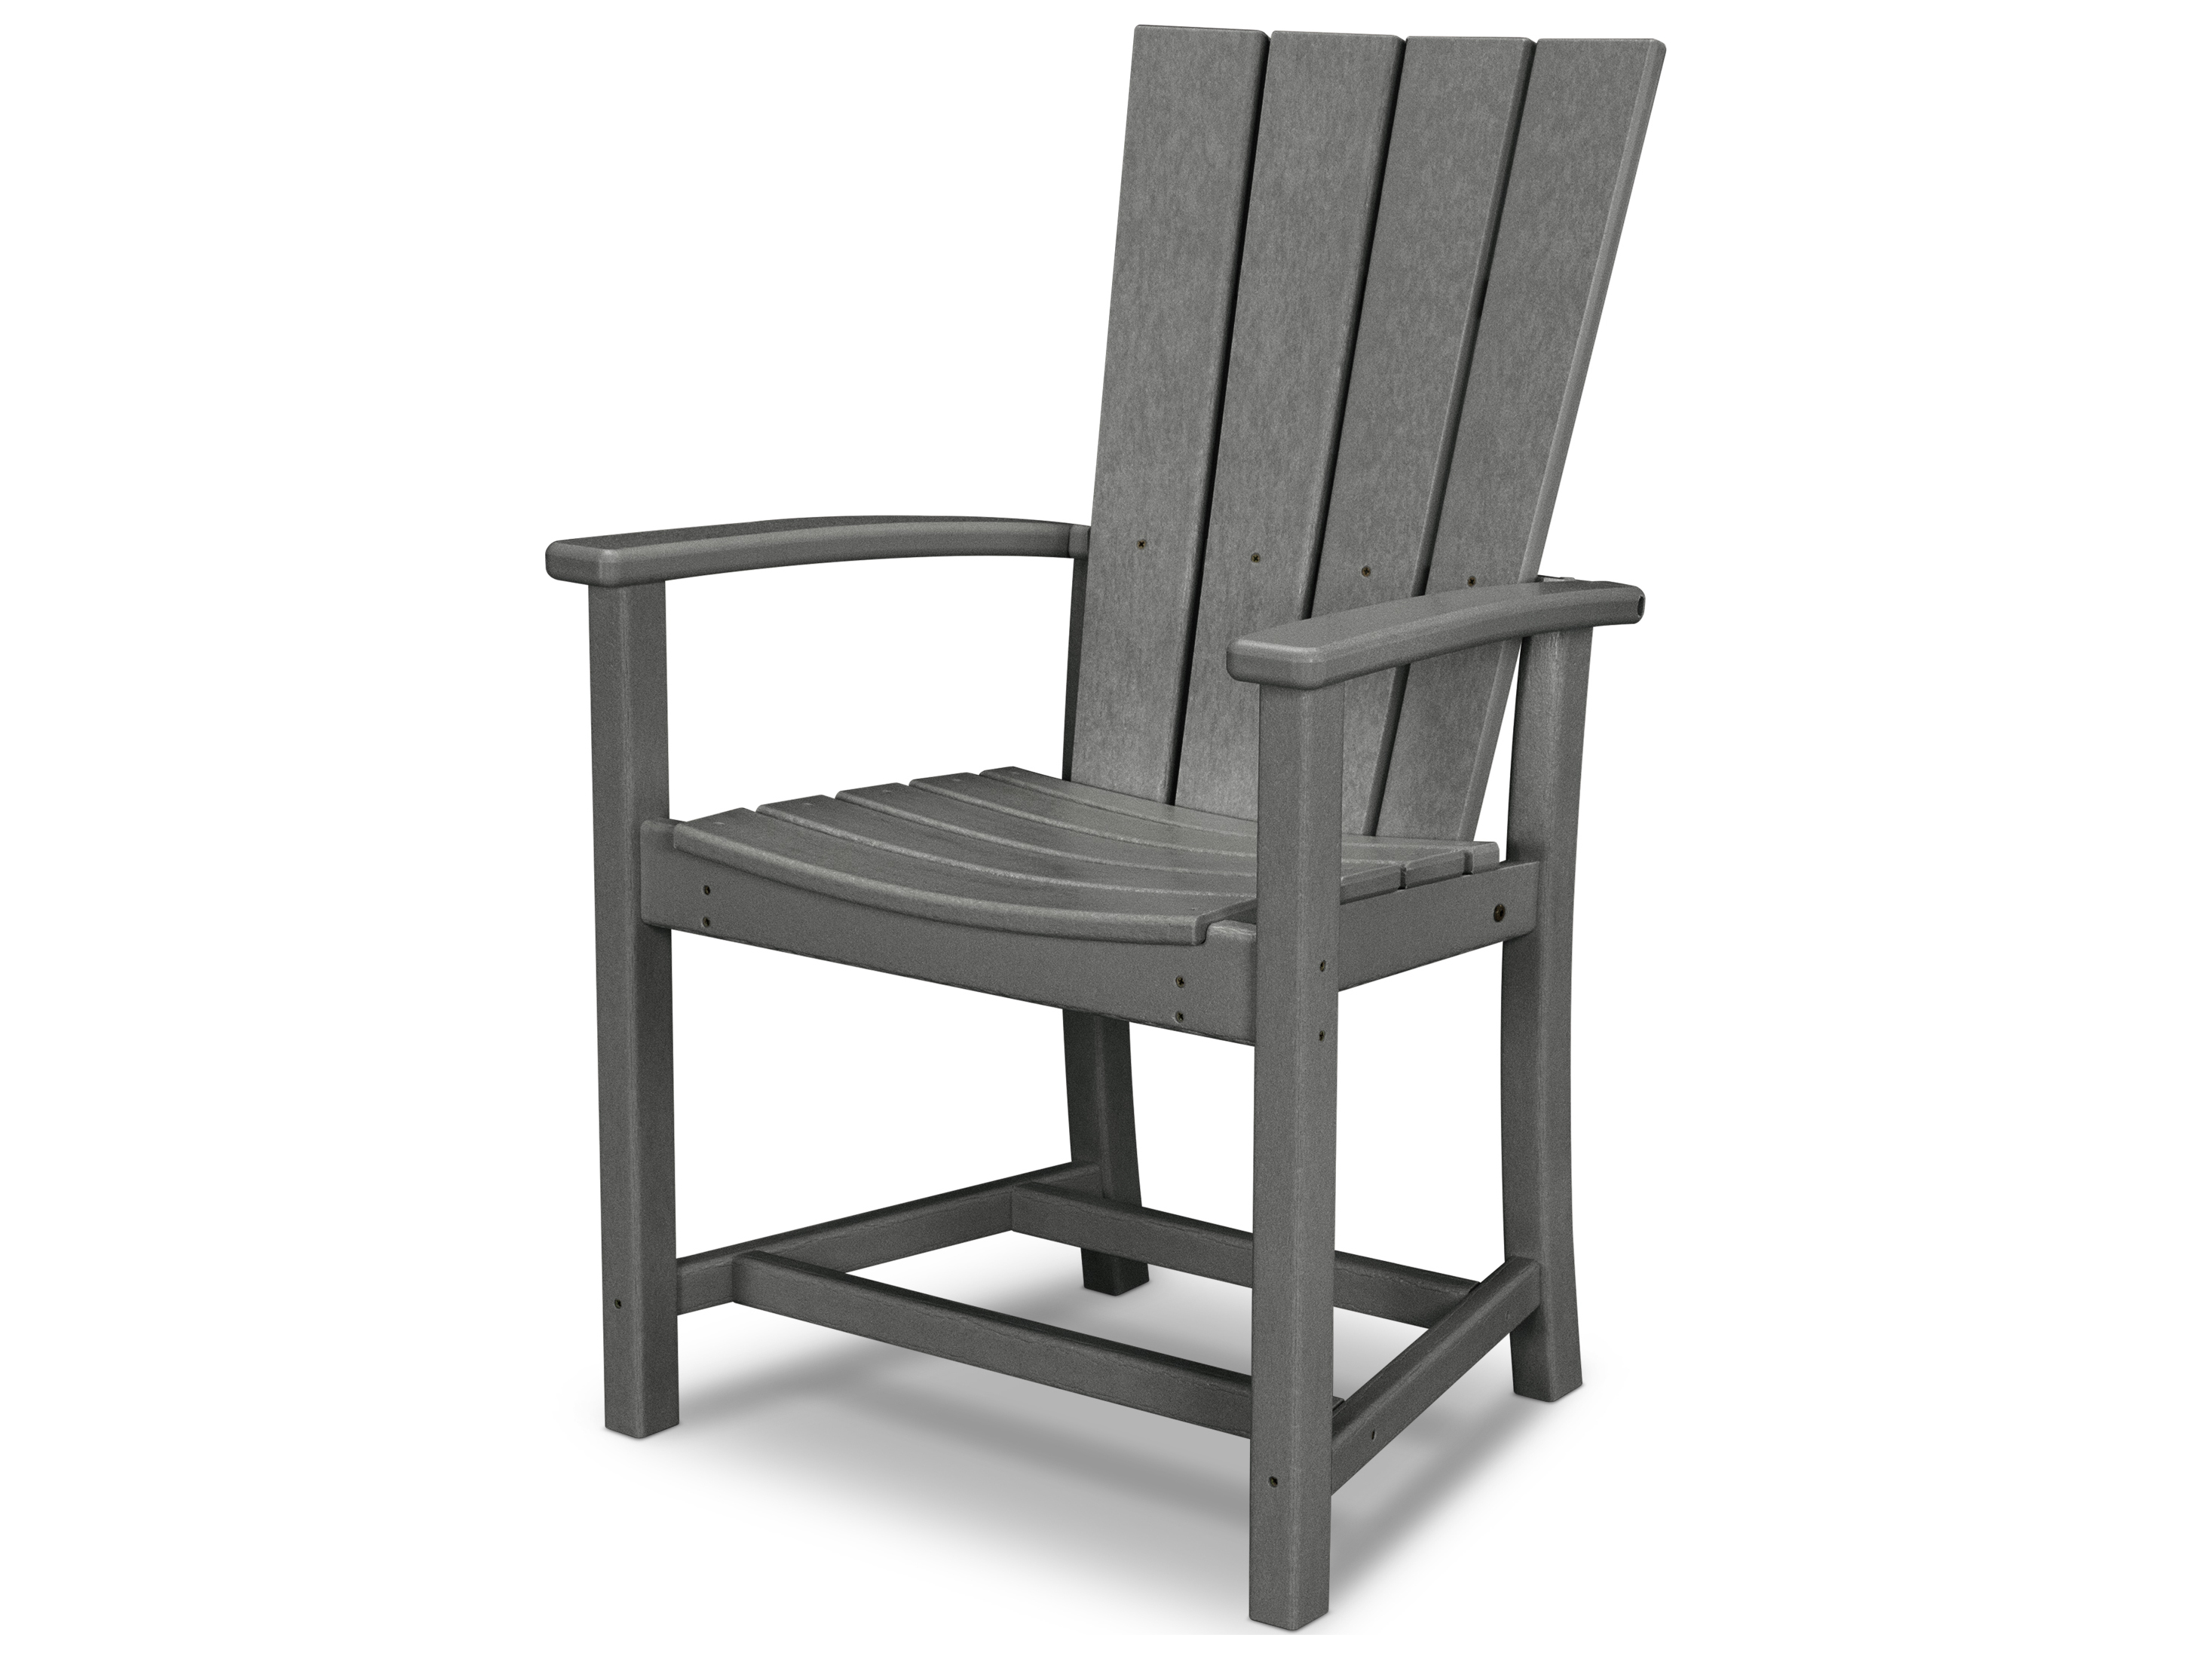 polywood adirondack chairs ikea rocking chair covers quattro recycled plastic dining